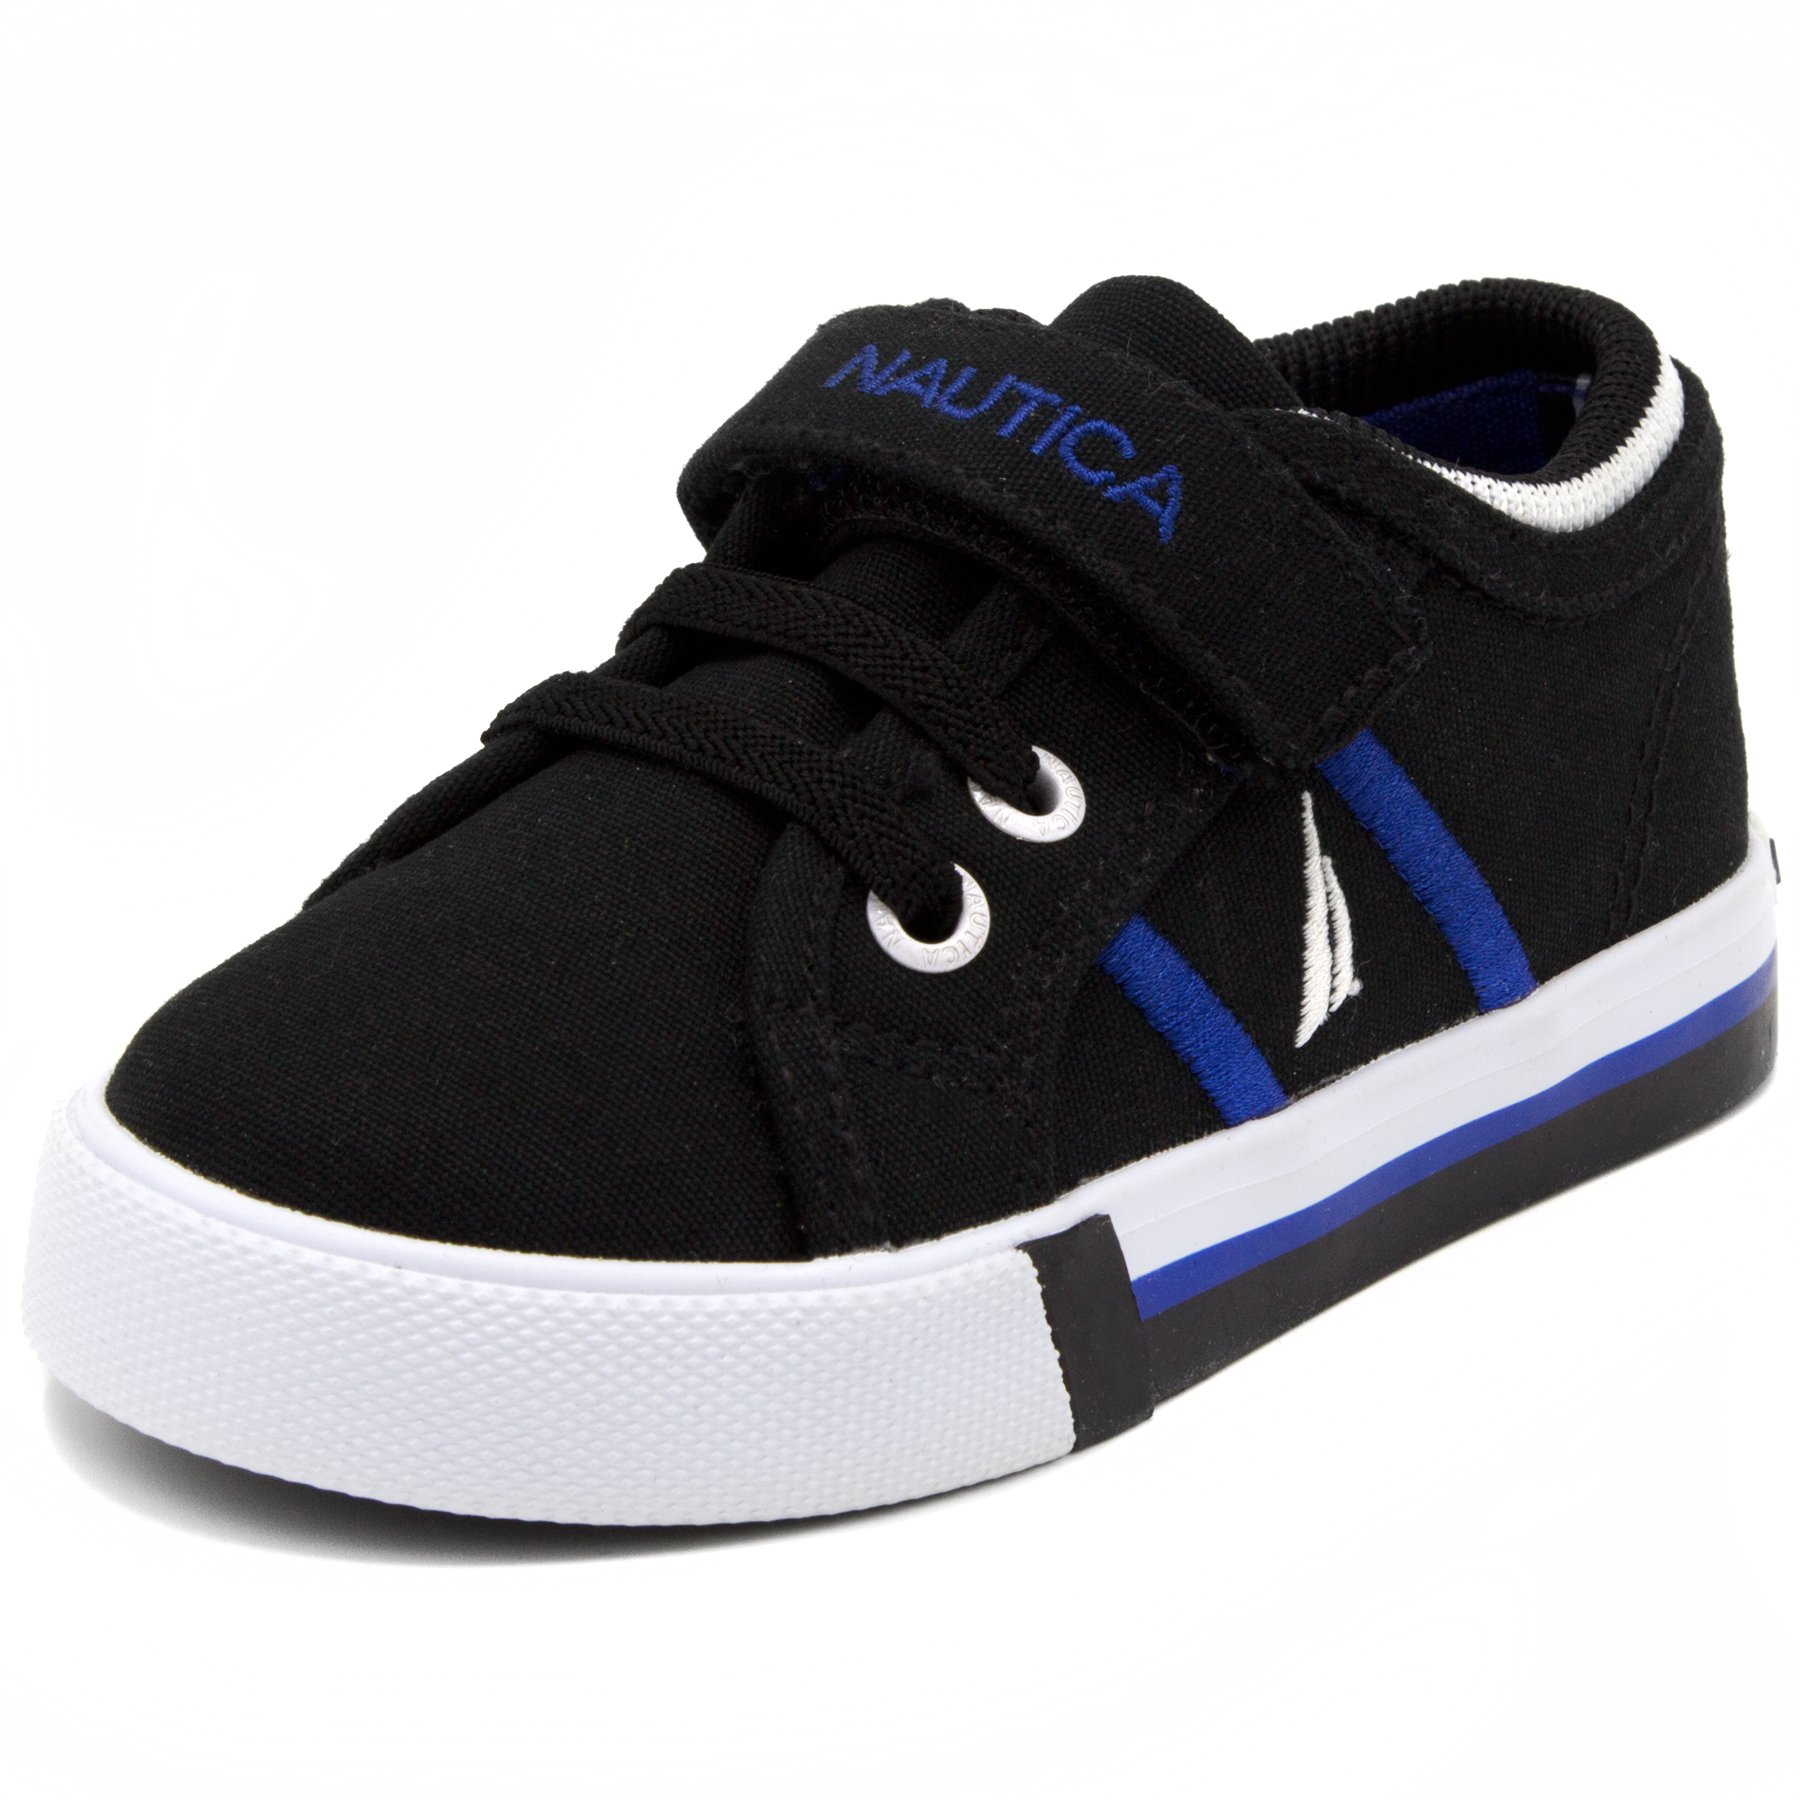 Nautica Toddler Edge View Canvas Sneakers Lace-up and Velcro Casual Shoes-Black-6